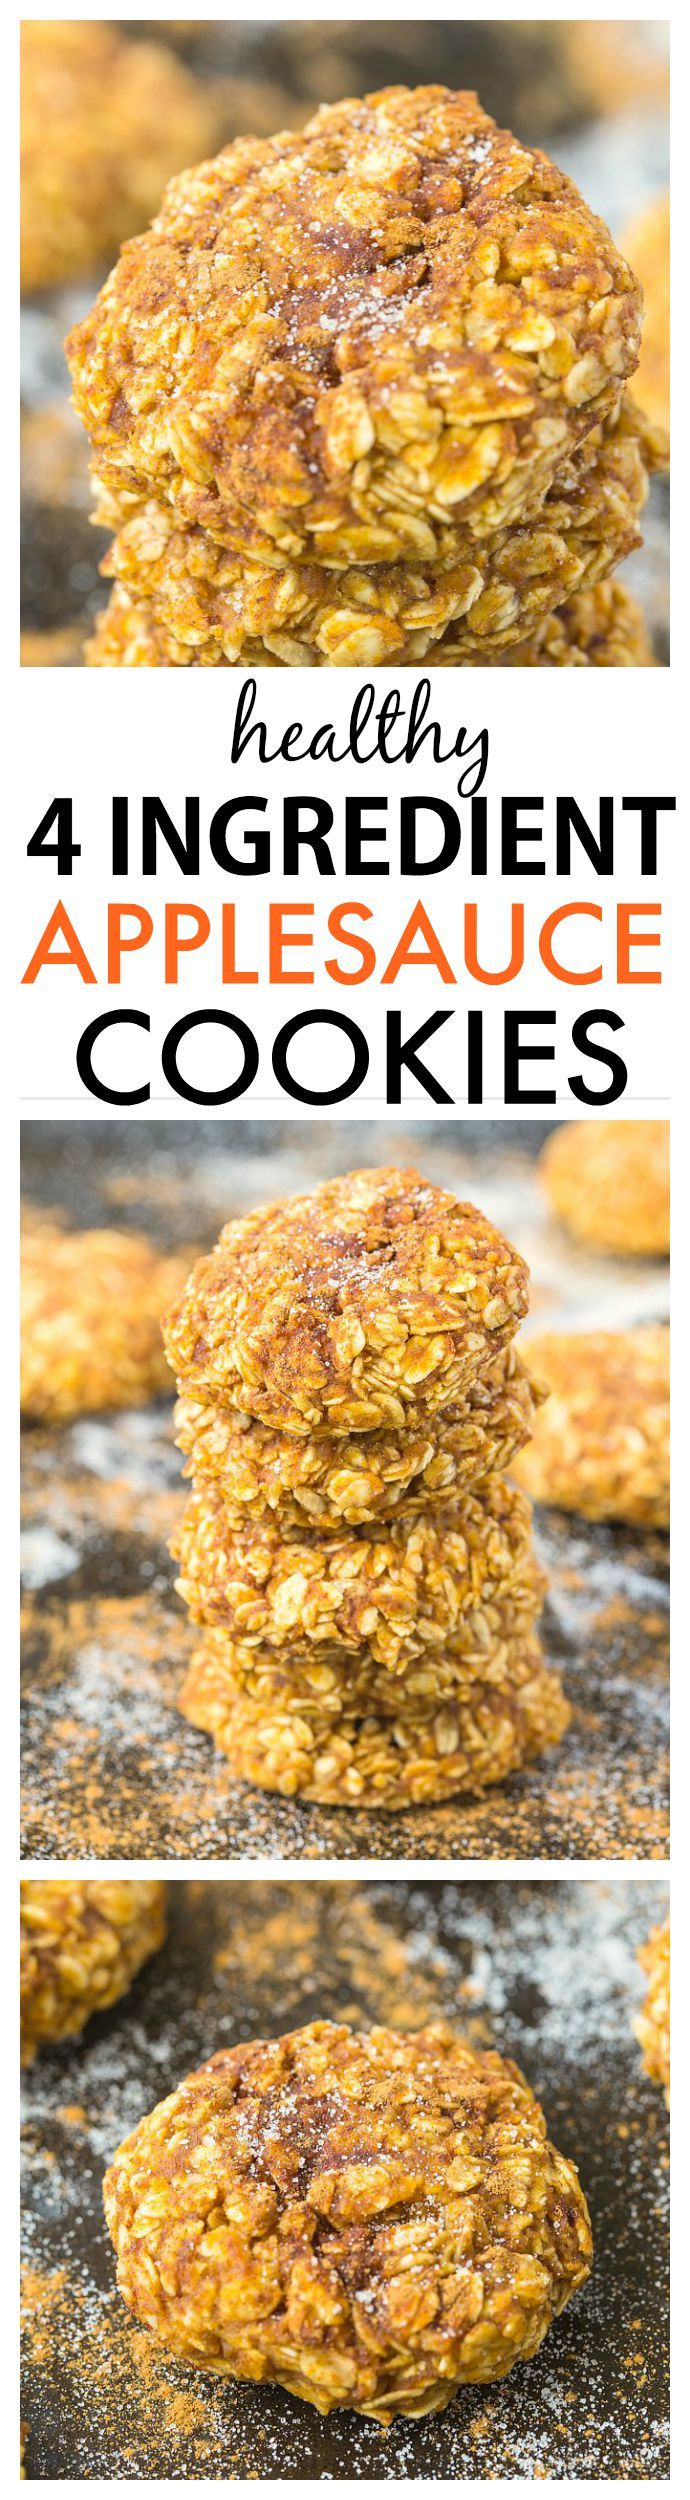 Healthy Four Ingredient Applesauce Cookies- Soft and chewy cookies which need just 4 ingredients- A delicious snack recipe which takes minutes! {gluten-free, vegan, refined sugar-free} - thebigmansworld.com